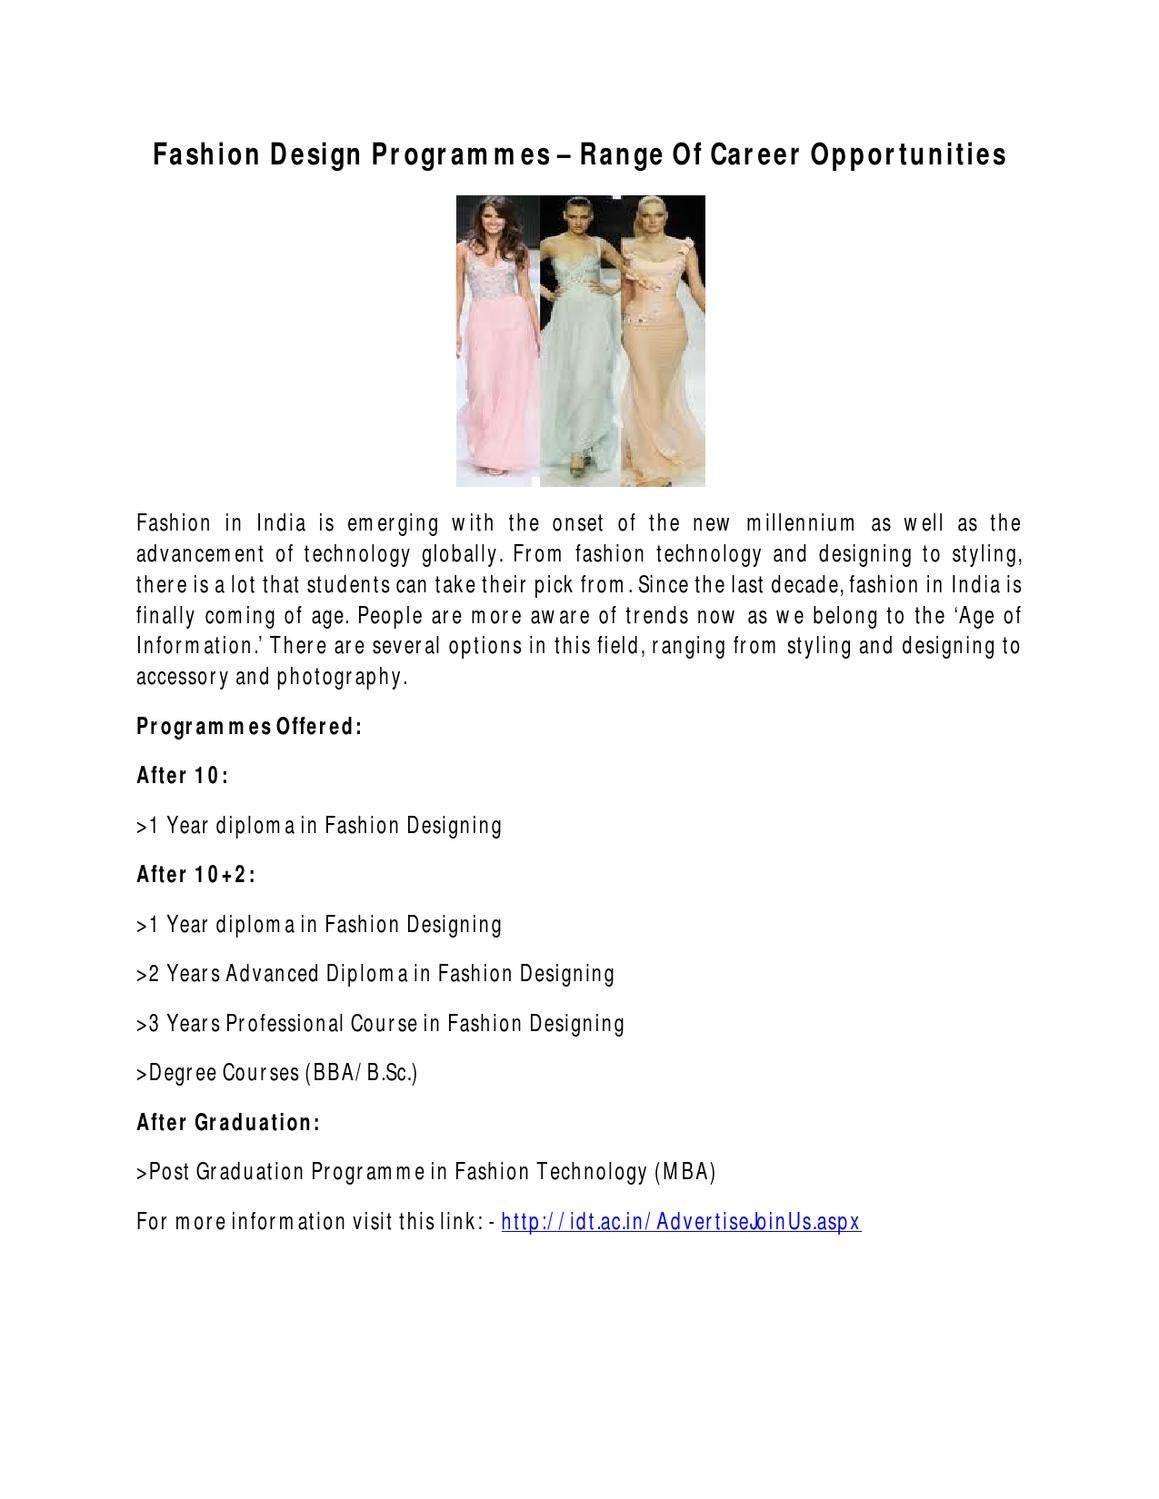 Fashion Design Programmes Range Of Career Opportunities By Fashion Ova Issuu